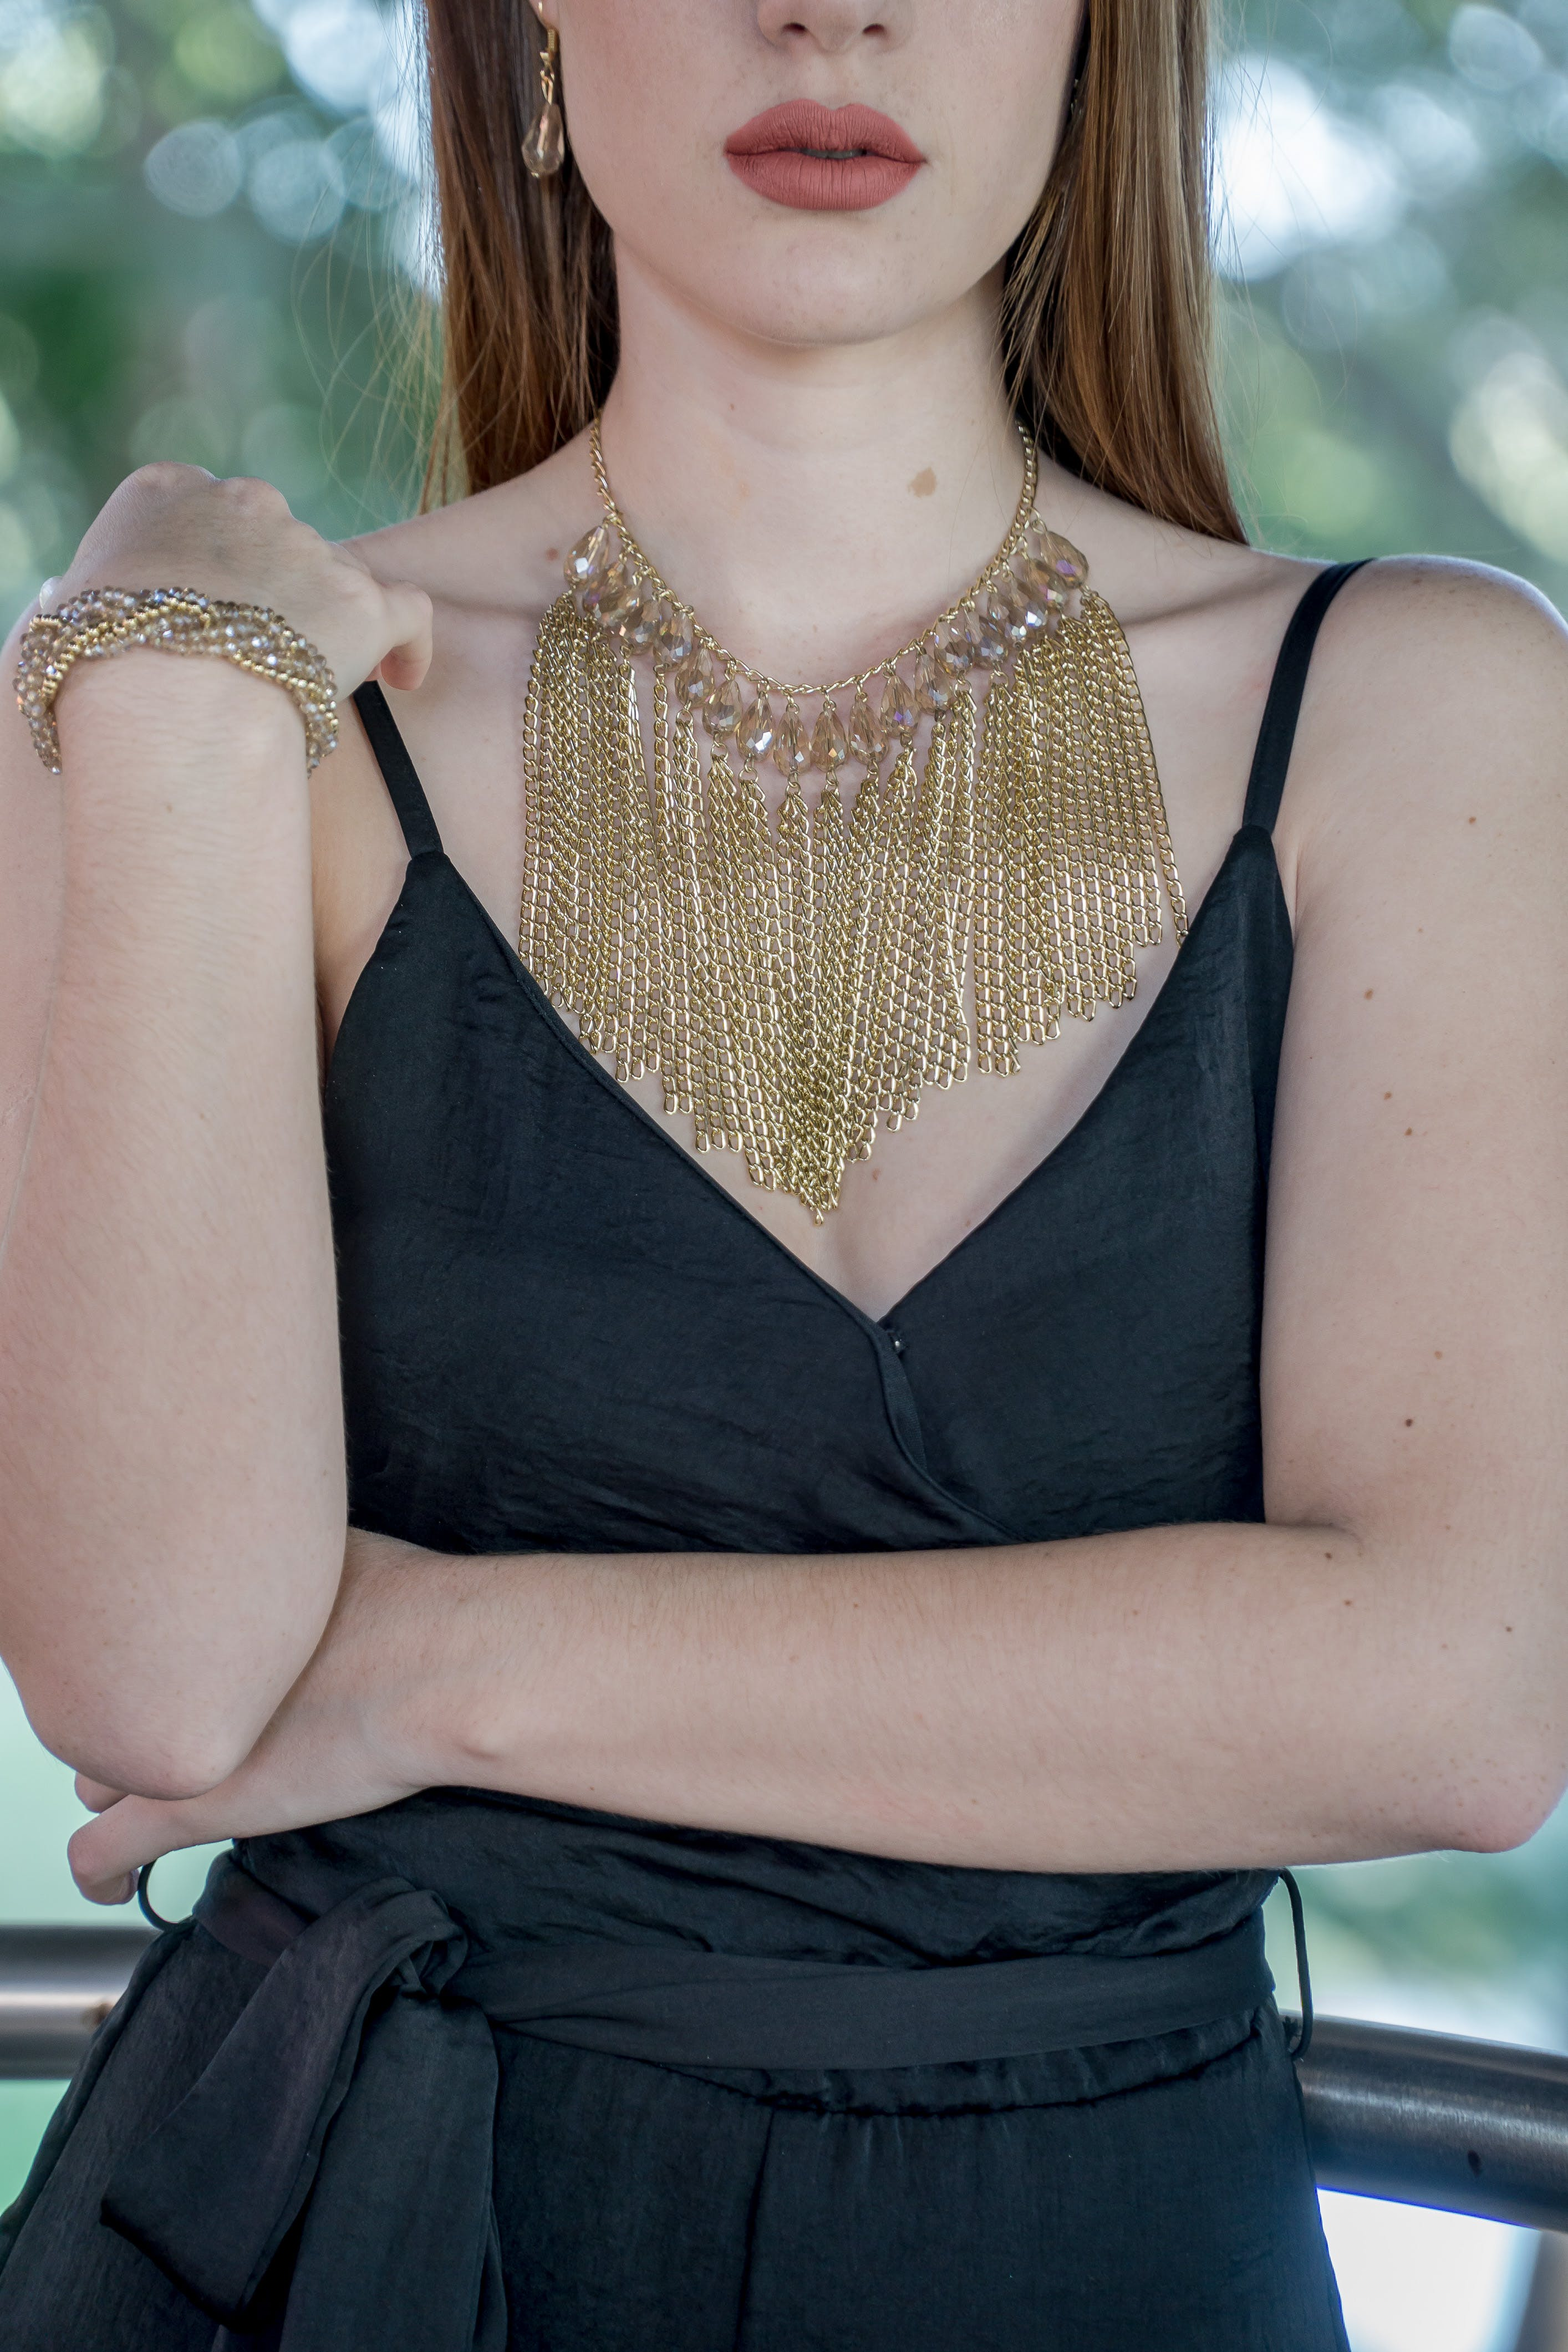 Woman Wearing Gold Chain Bib Necklace